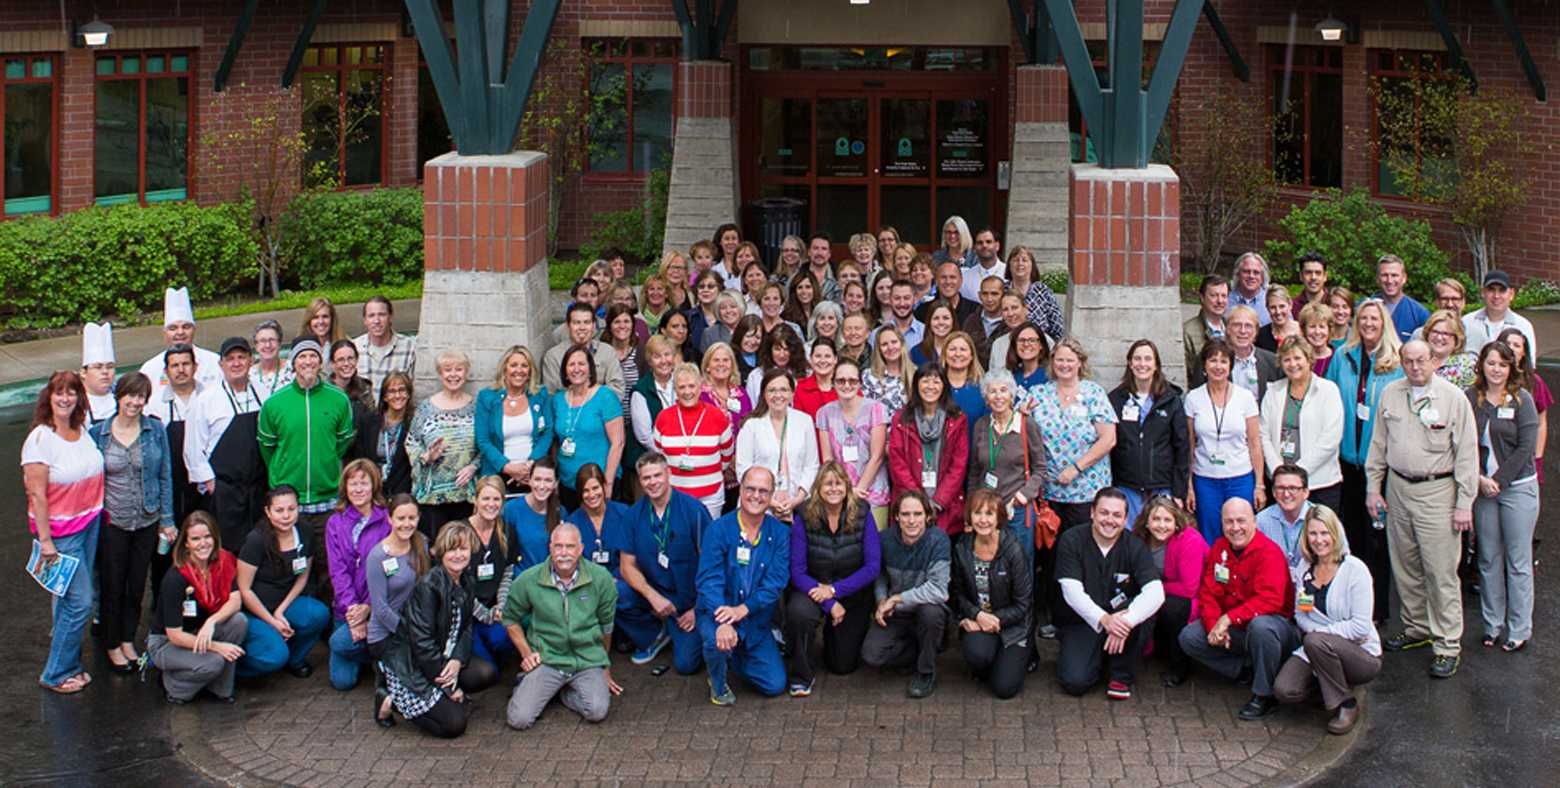 tahoe forest hospital staff in front of hospital